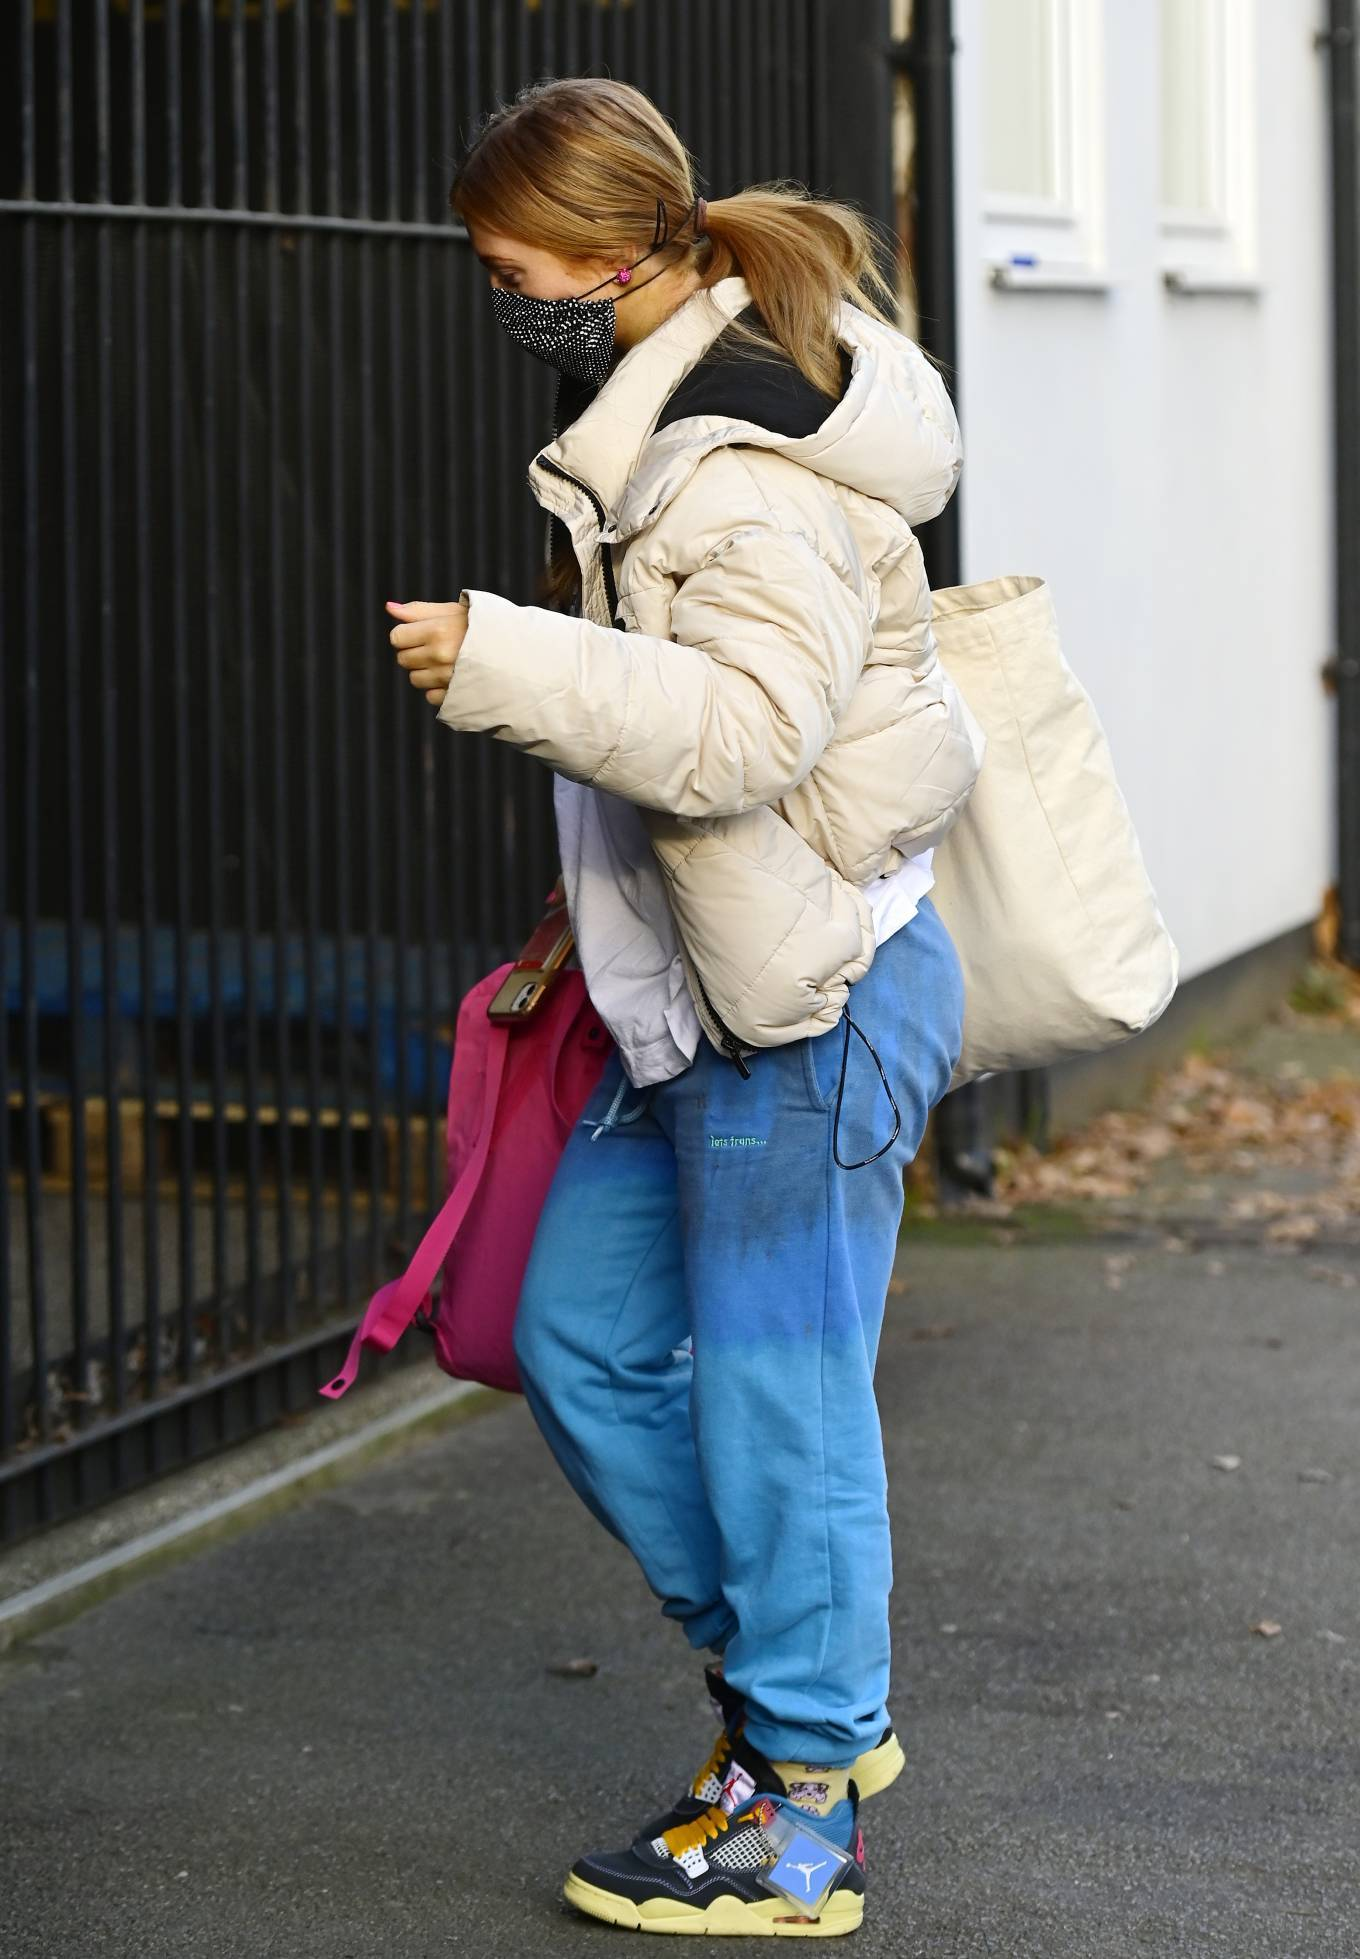 Maisie Smith - With partner Gorka Márquez arrive for Strictly Come Dancing rehearsals